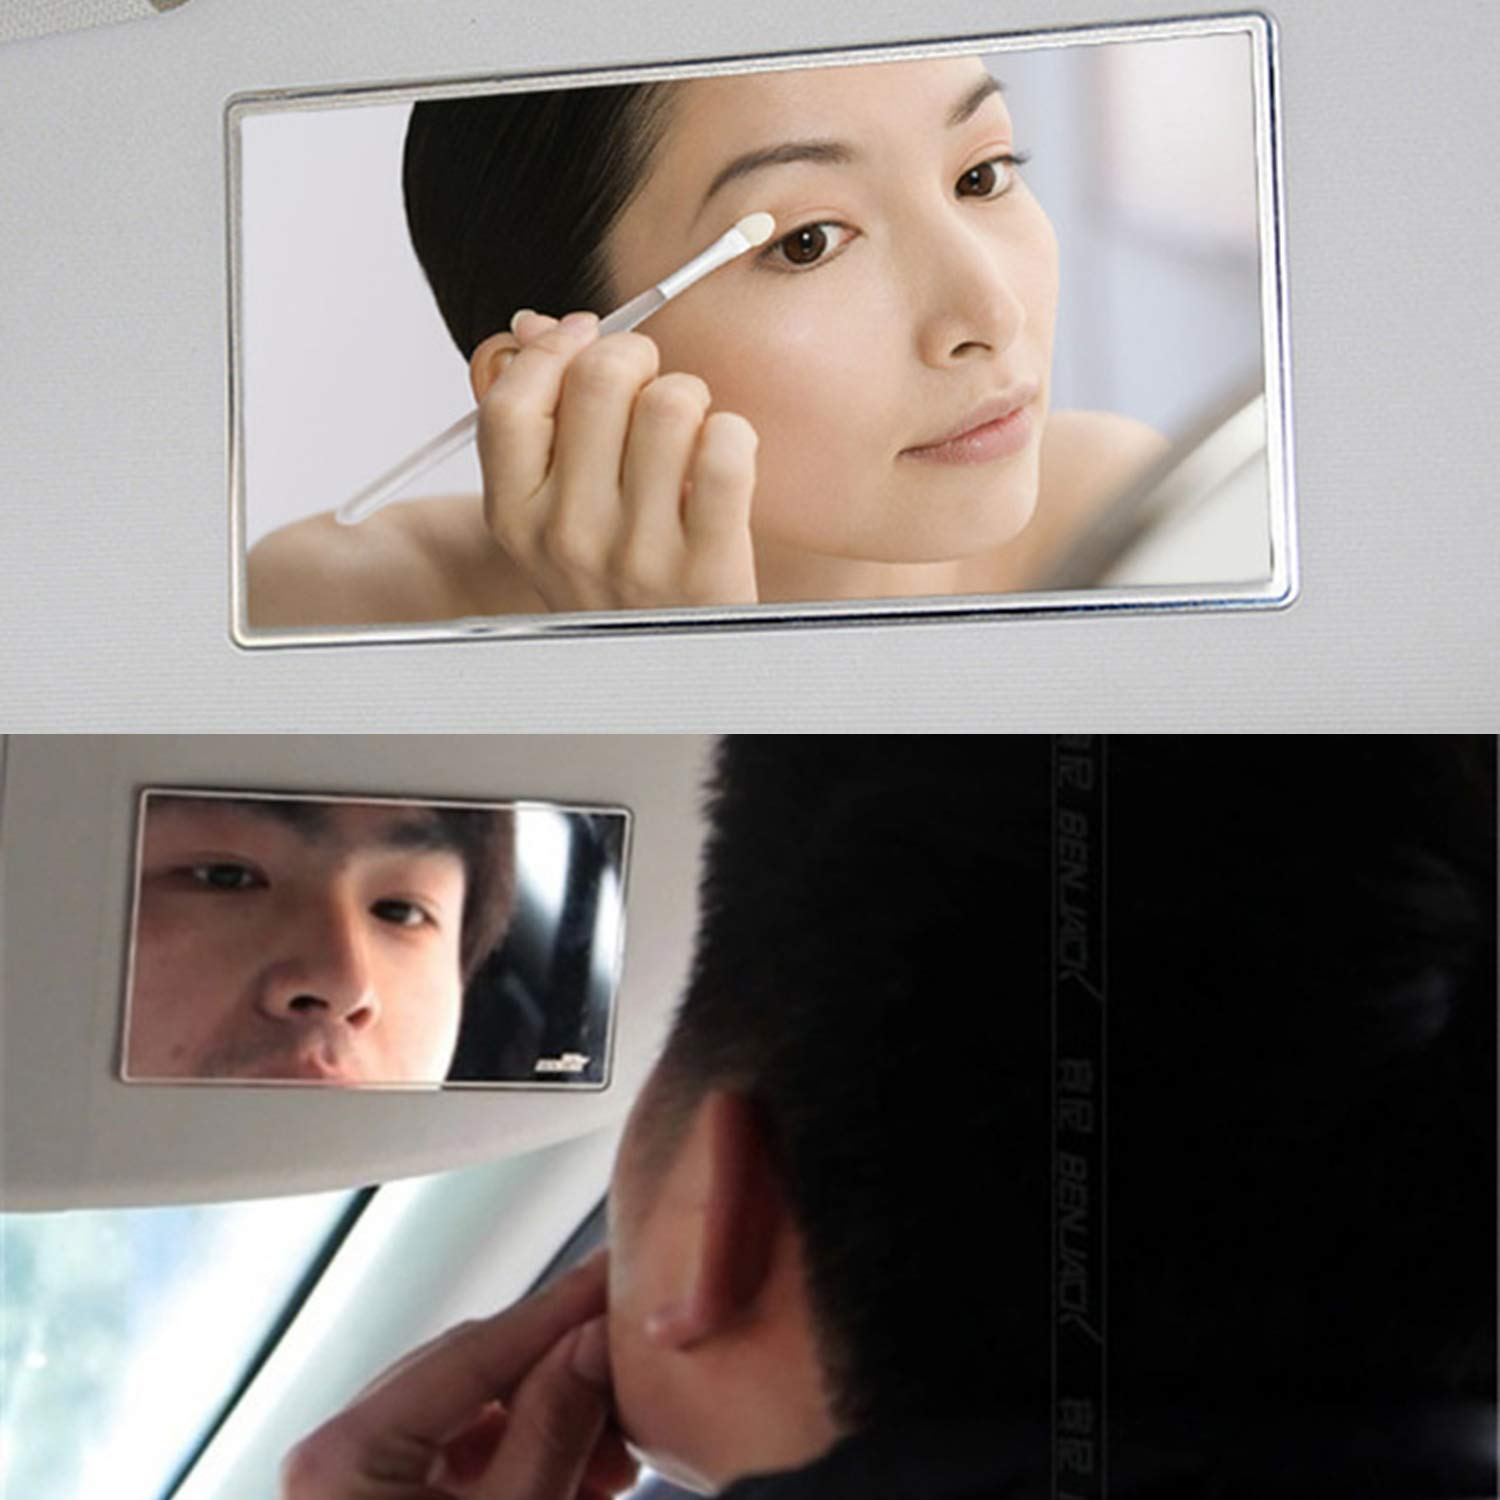 NCElec Sun Visor Mirror for Car Makeup Vanity Mirror